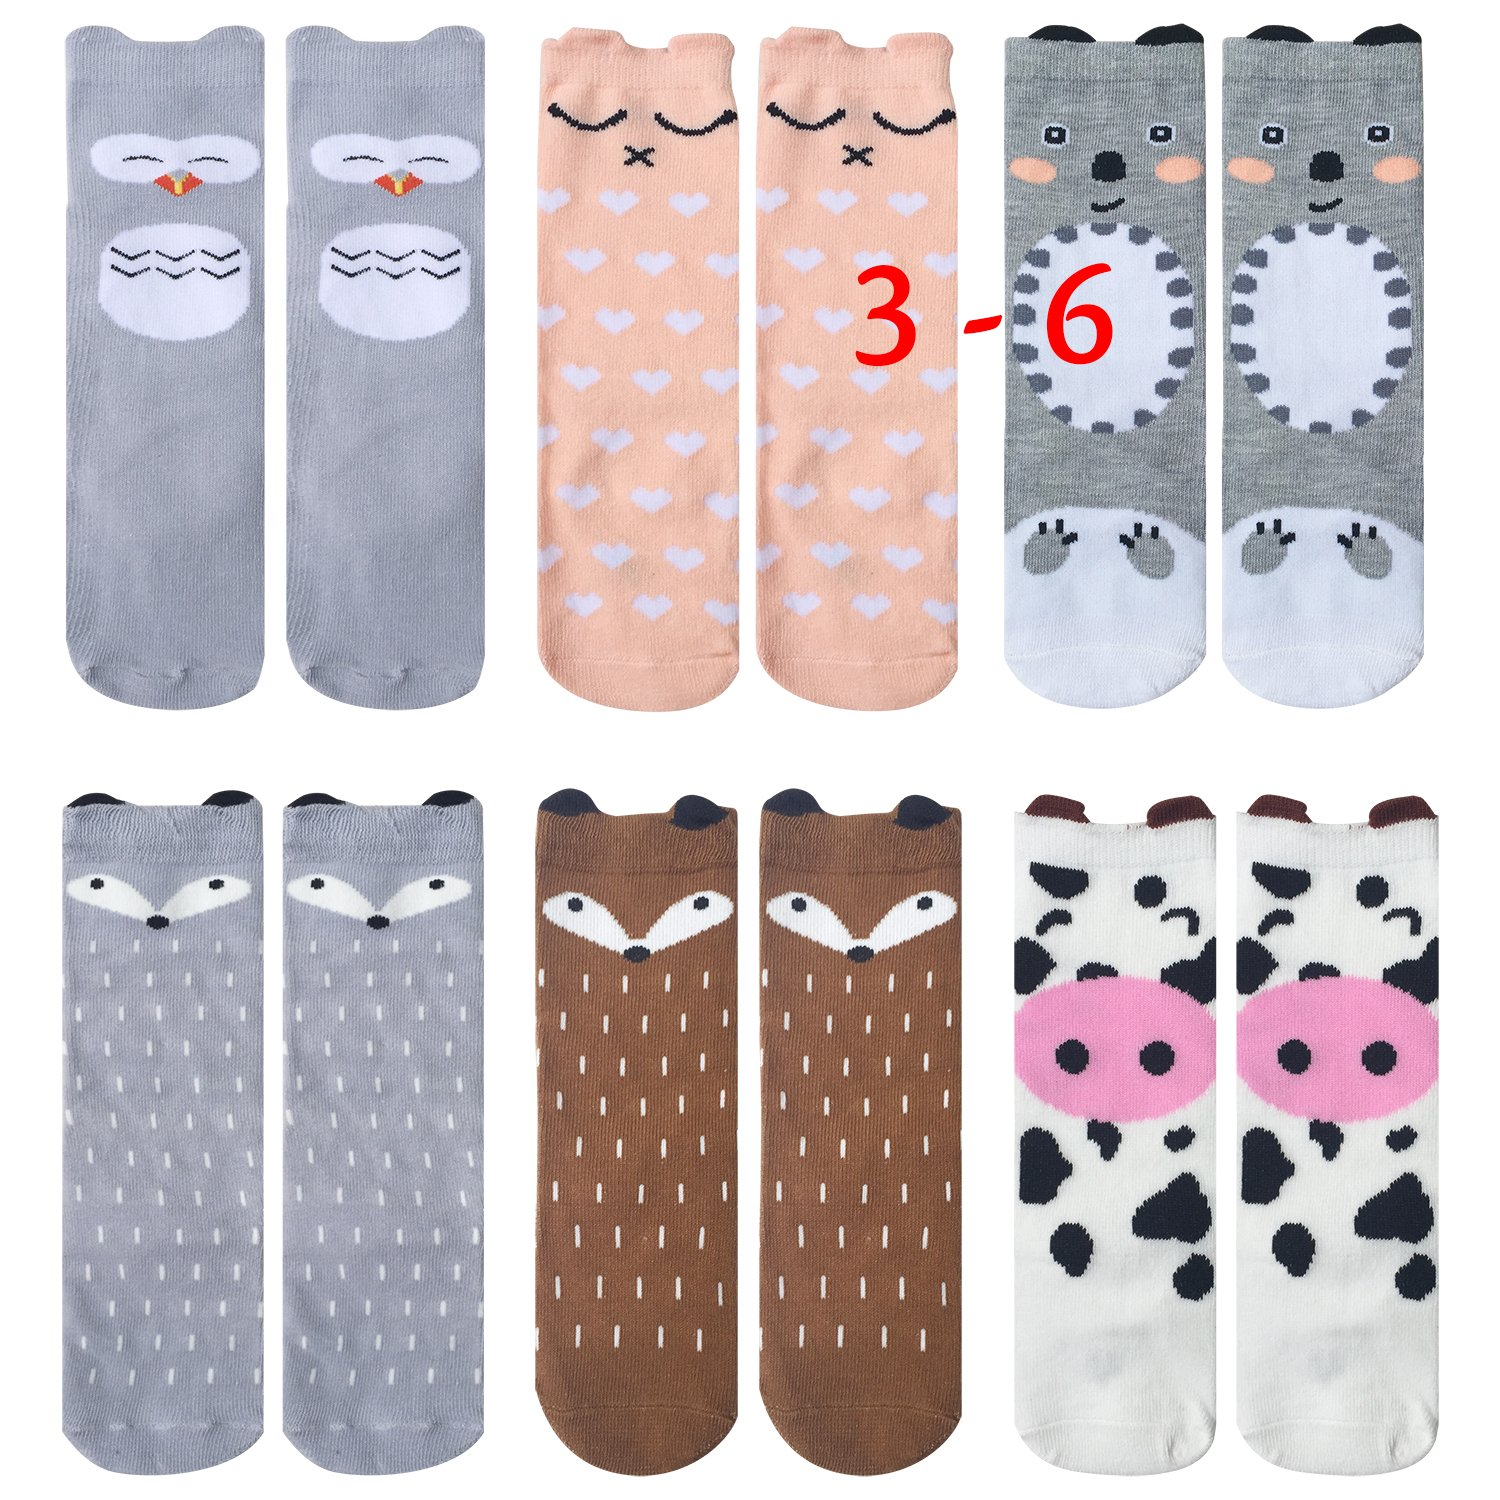 Fasker 6 Pairs Unisex Baby Girls Socks Knee High Socks Animal Baby Stockings (L(3-6 Years), B-6 Pack)